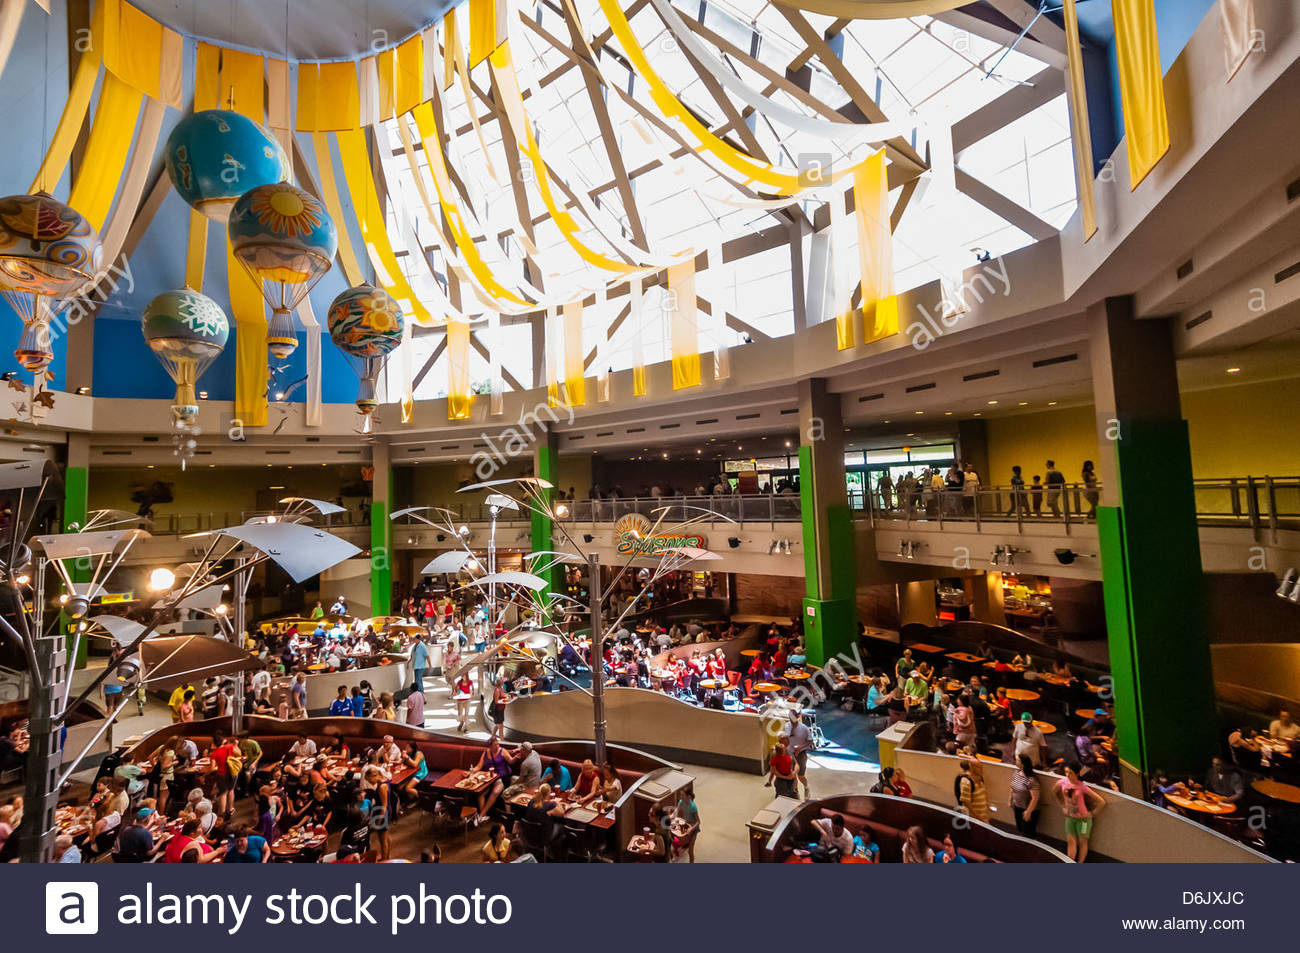 mall as disneyland Orlando is the perfect destination for shopping explore detailed listings for malls, outlets, boutiques, shopping villages and theme park stores.